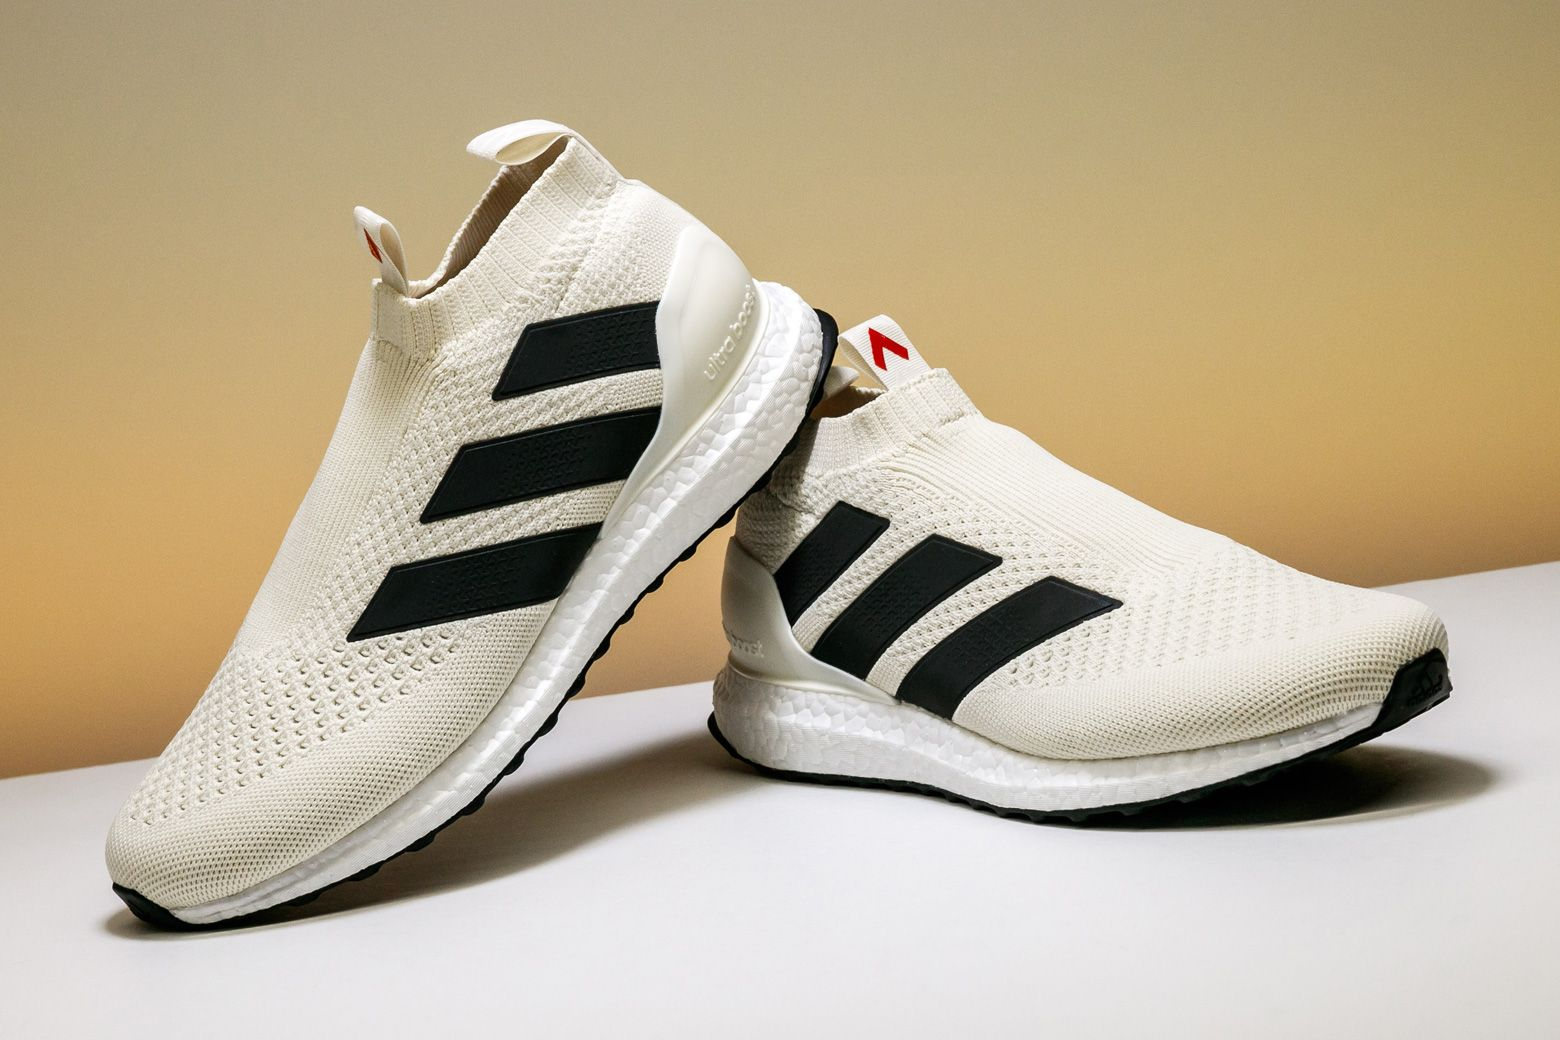 Adidas Ace 17 Purecontrol Ultra Boos By9091 Sneakers Fashion Dress Shoes Men Adidas Shoes Mens